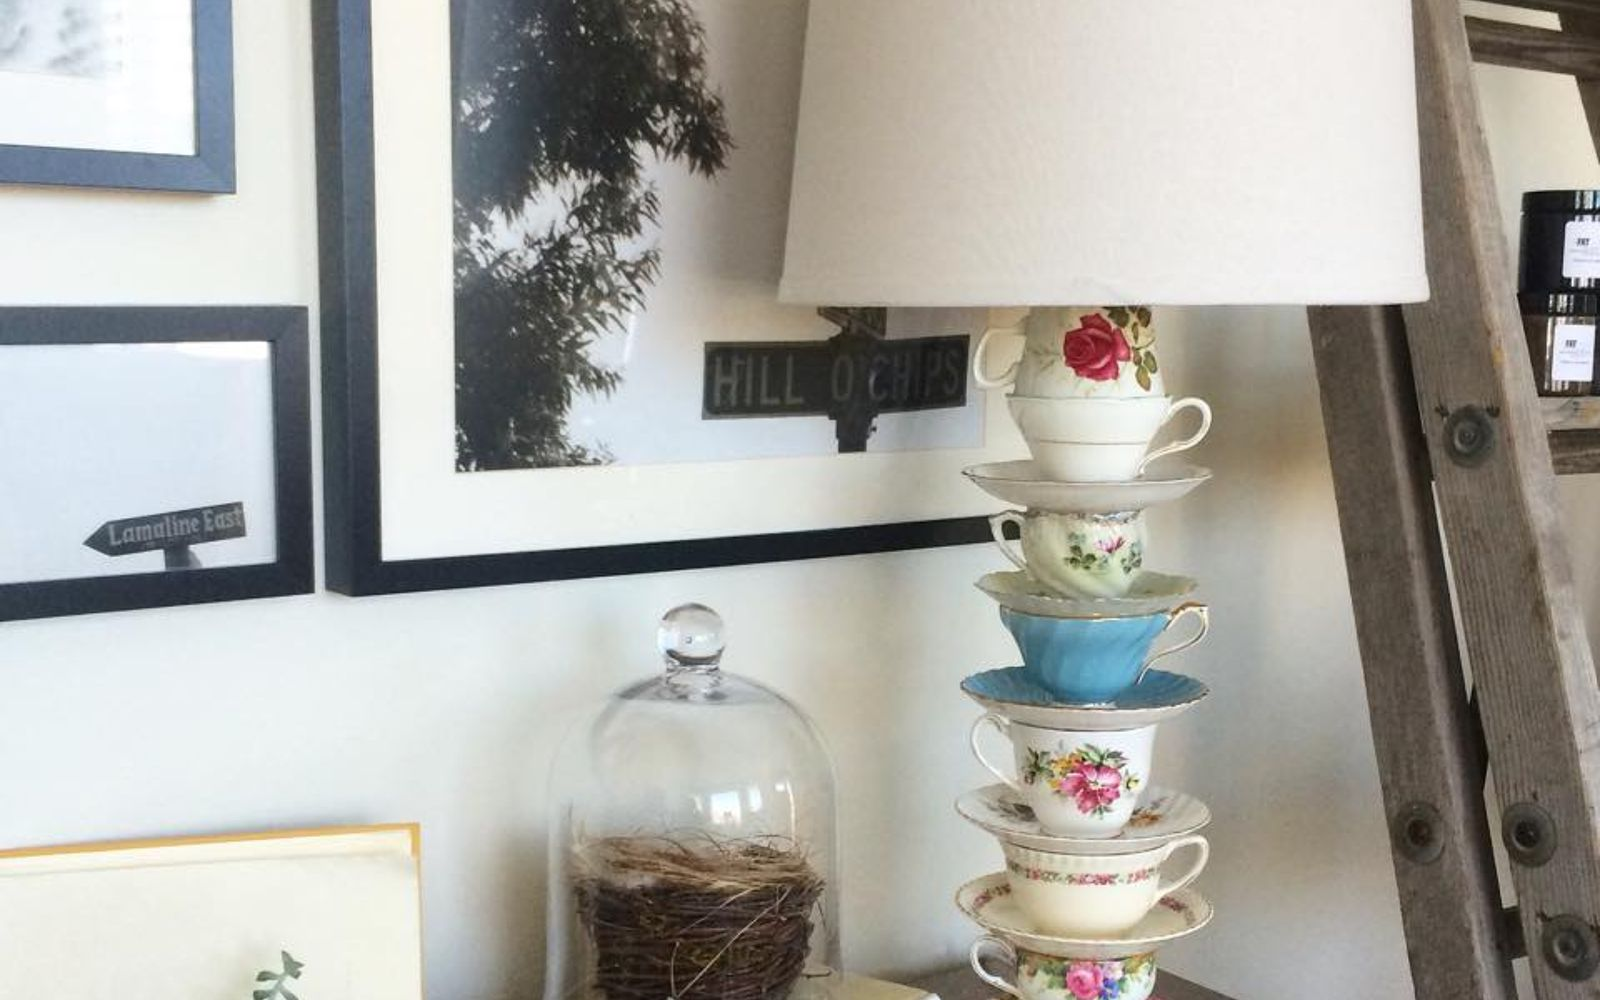 s don t ditch your broken teacups til you see what people do with them, repurposing upcycling, Stack cups and saucers into a whimsical lamp